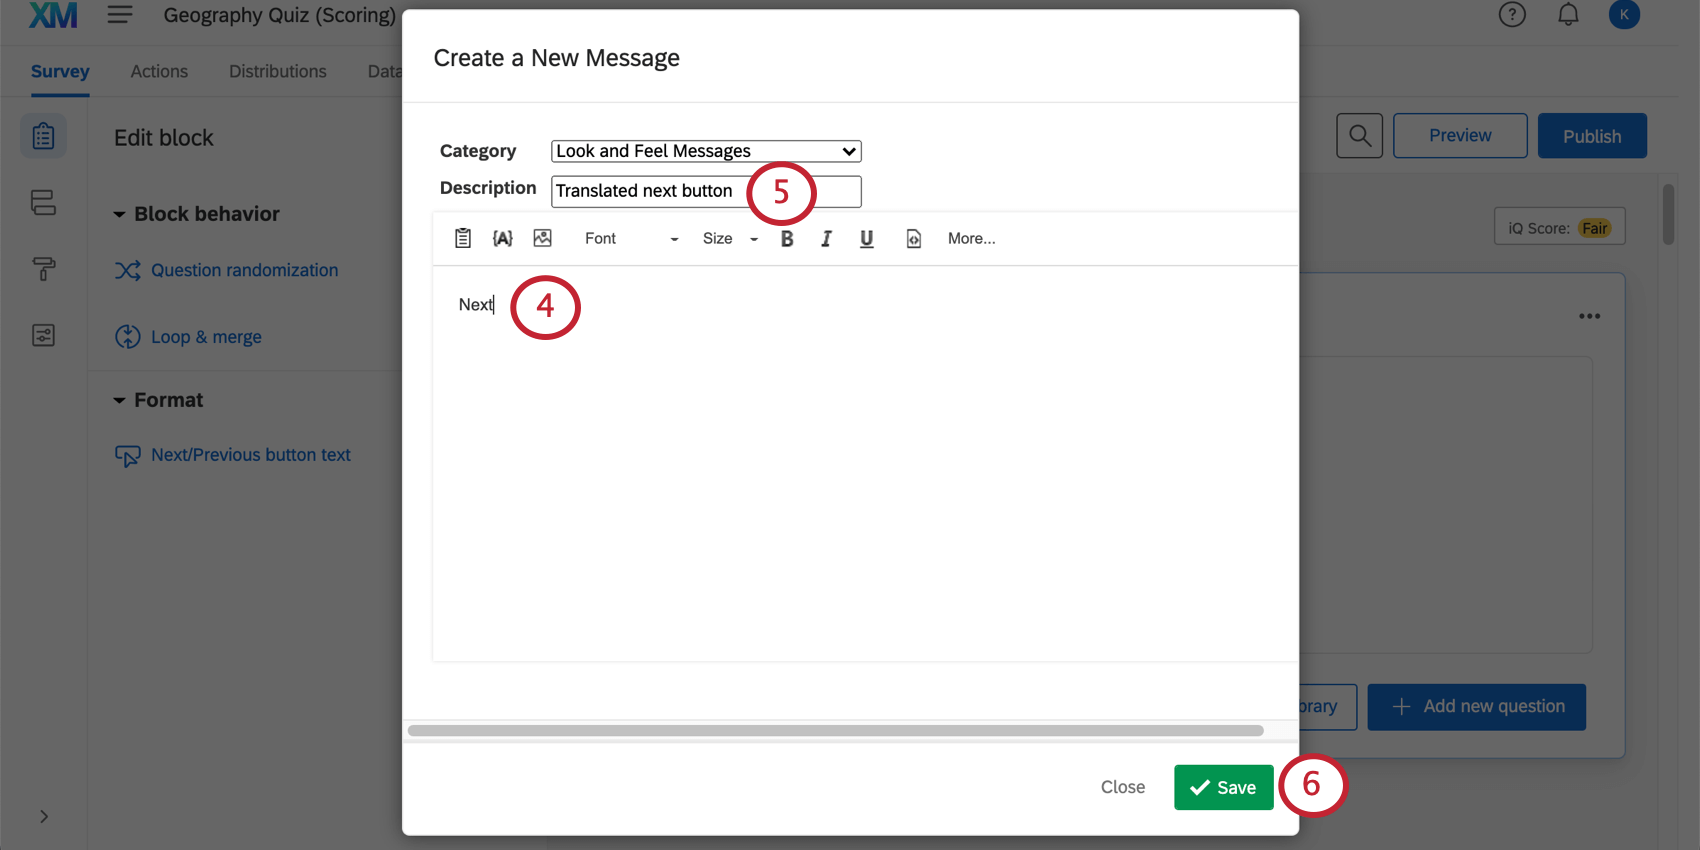 image of the create new message screen for creating a message for next/previous buttons.